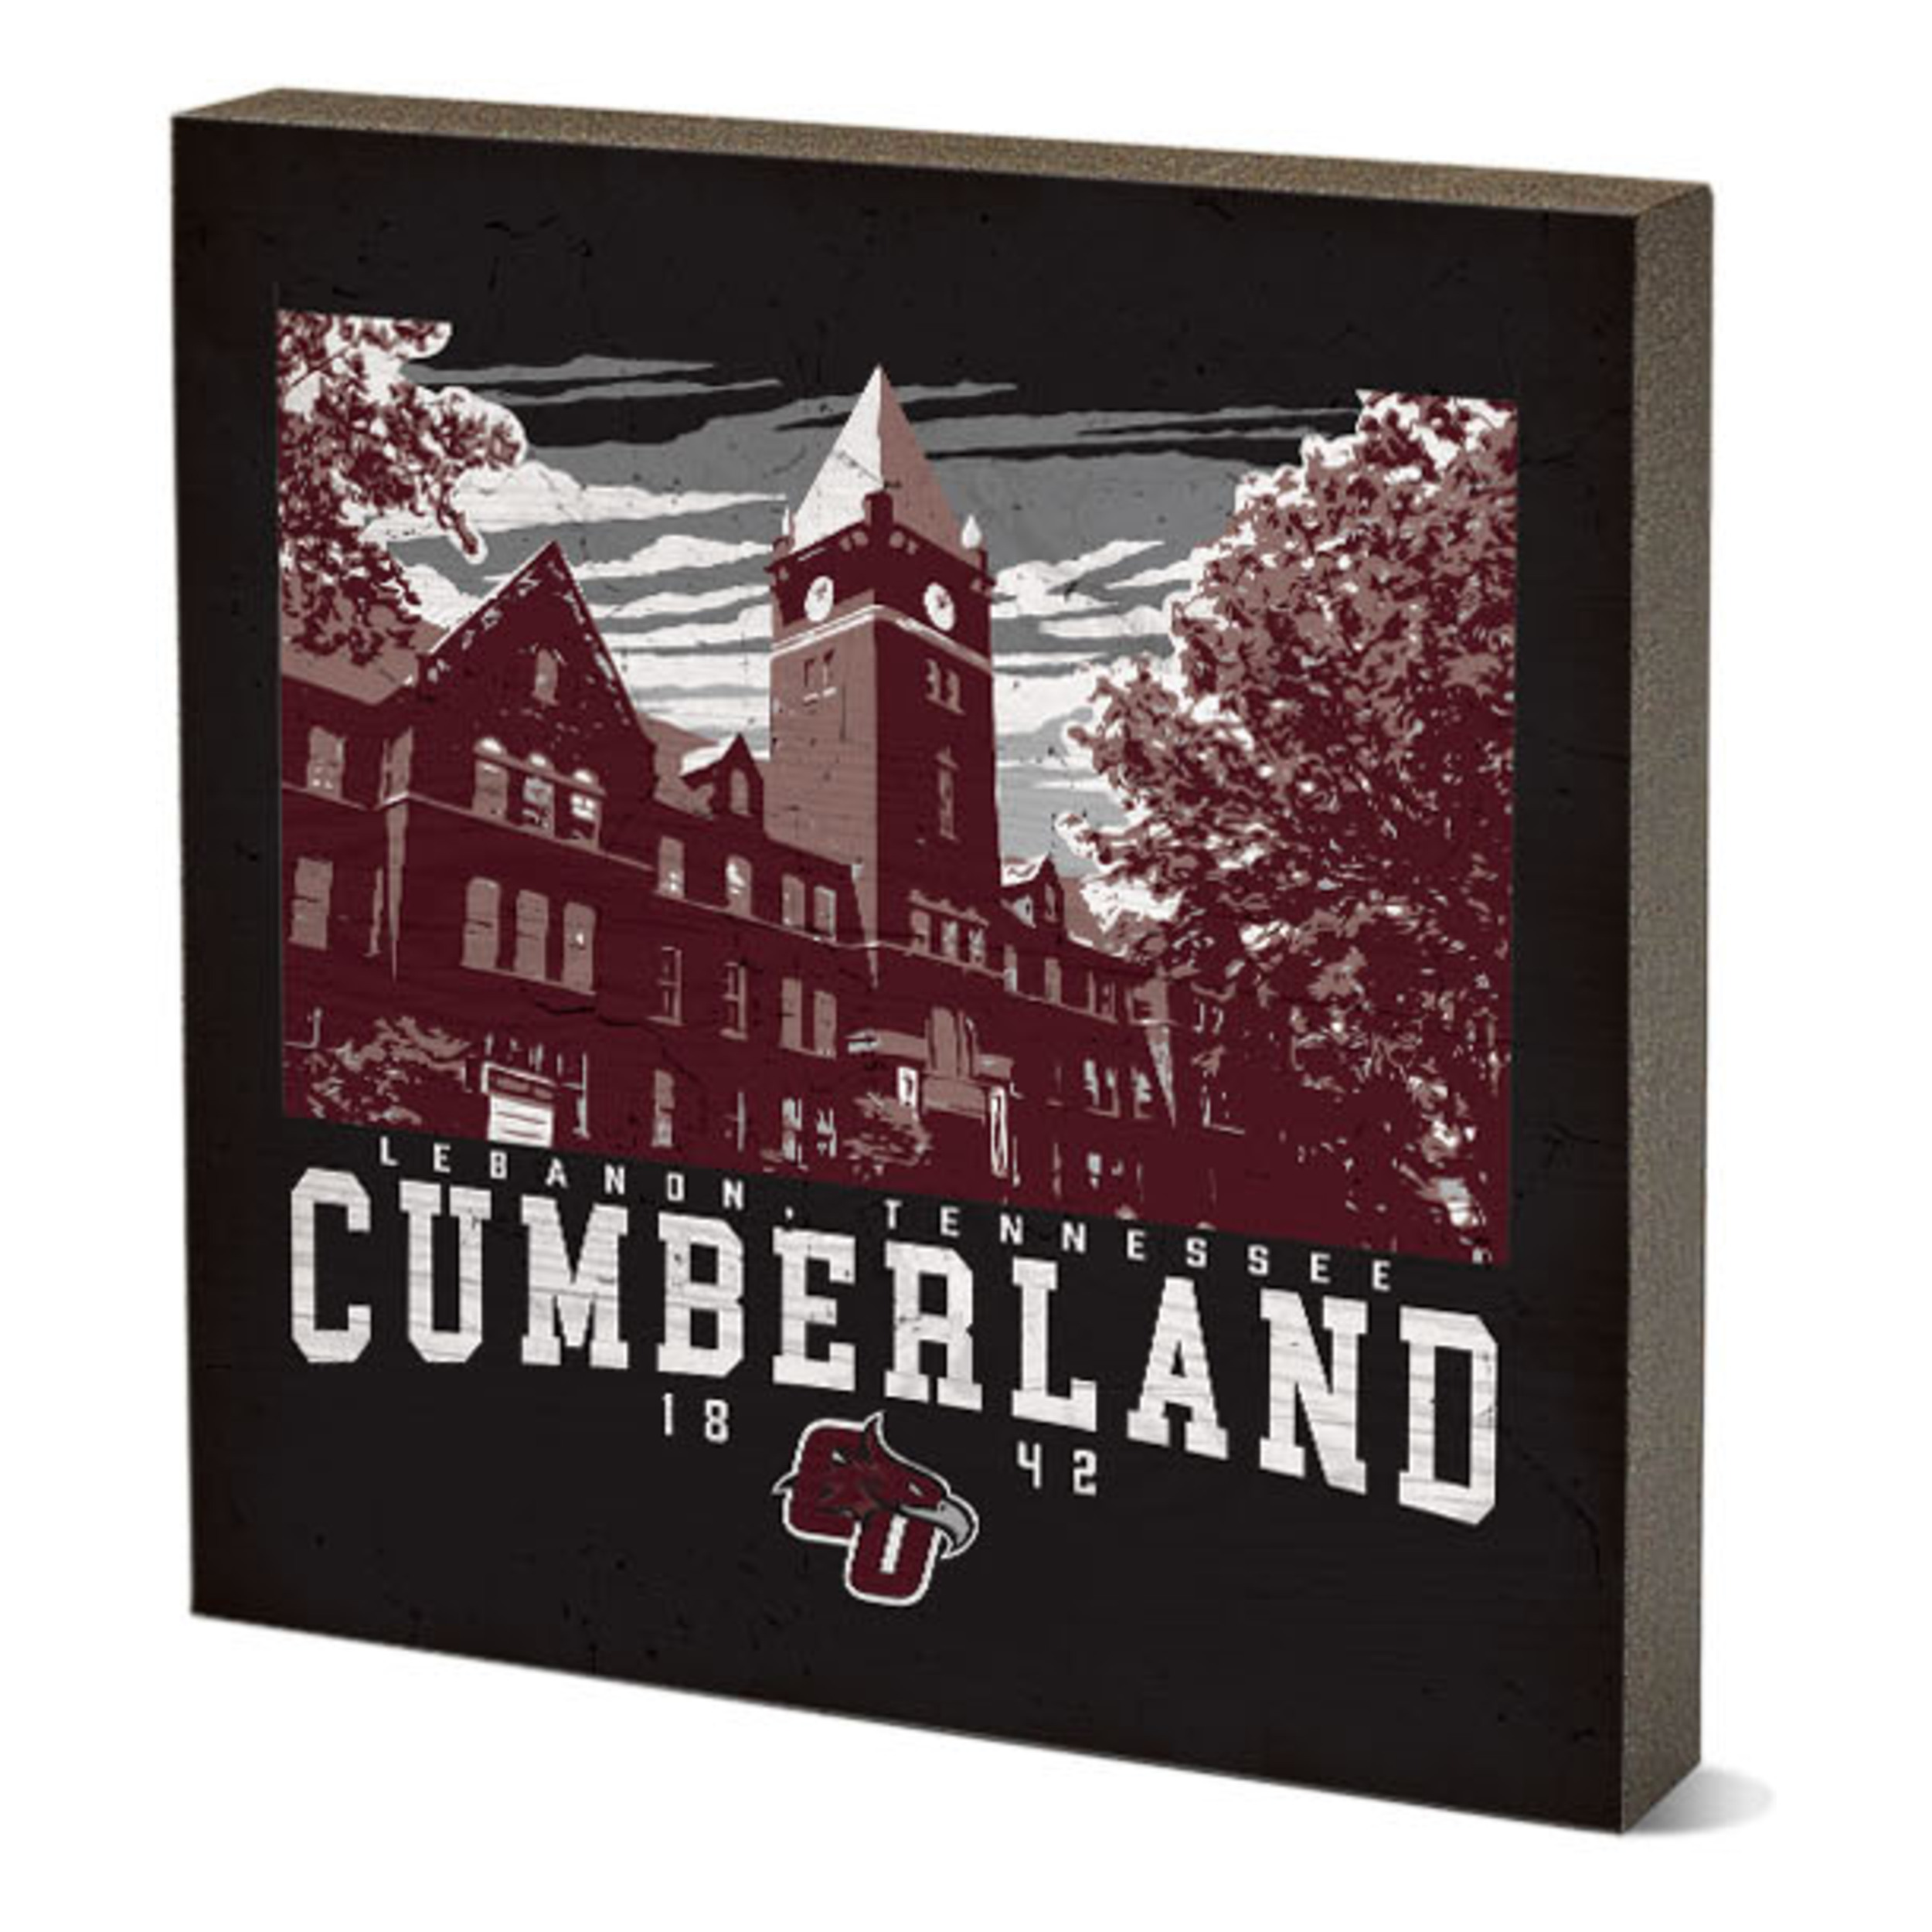 """Cumberland Campus Poster Table Top Square 5.5"""" x 5.5"""""""